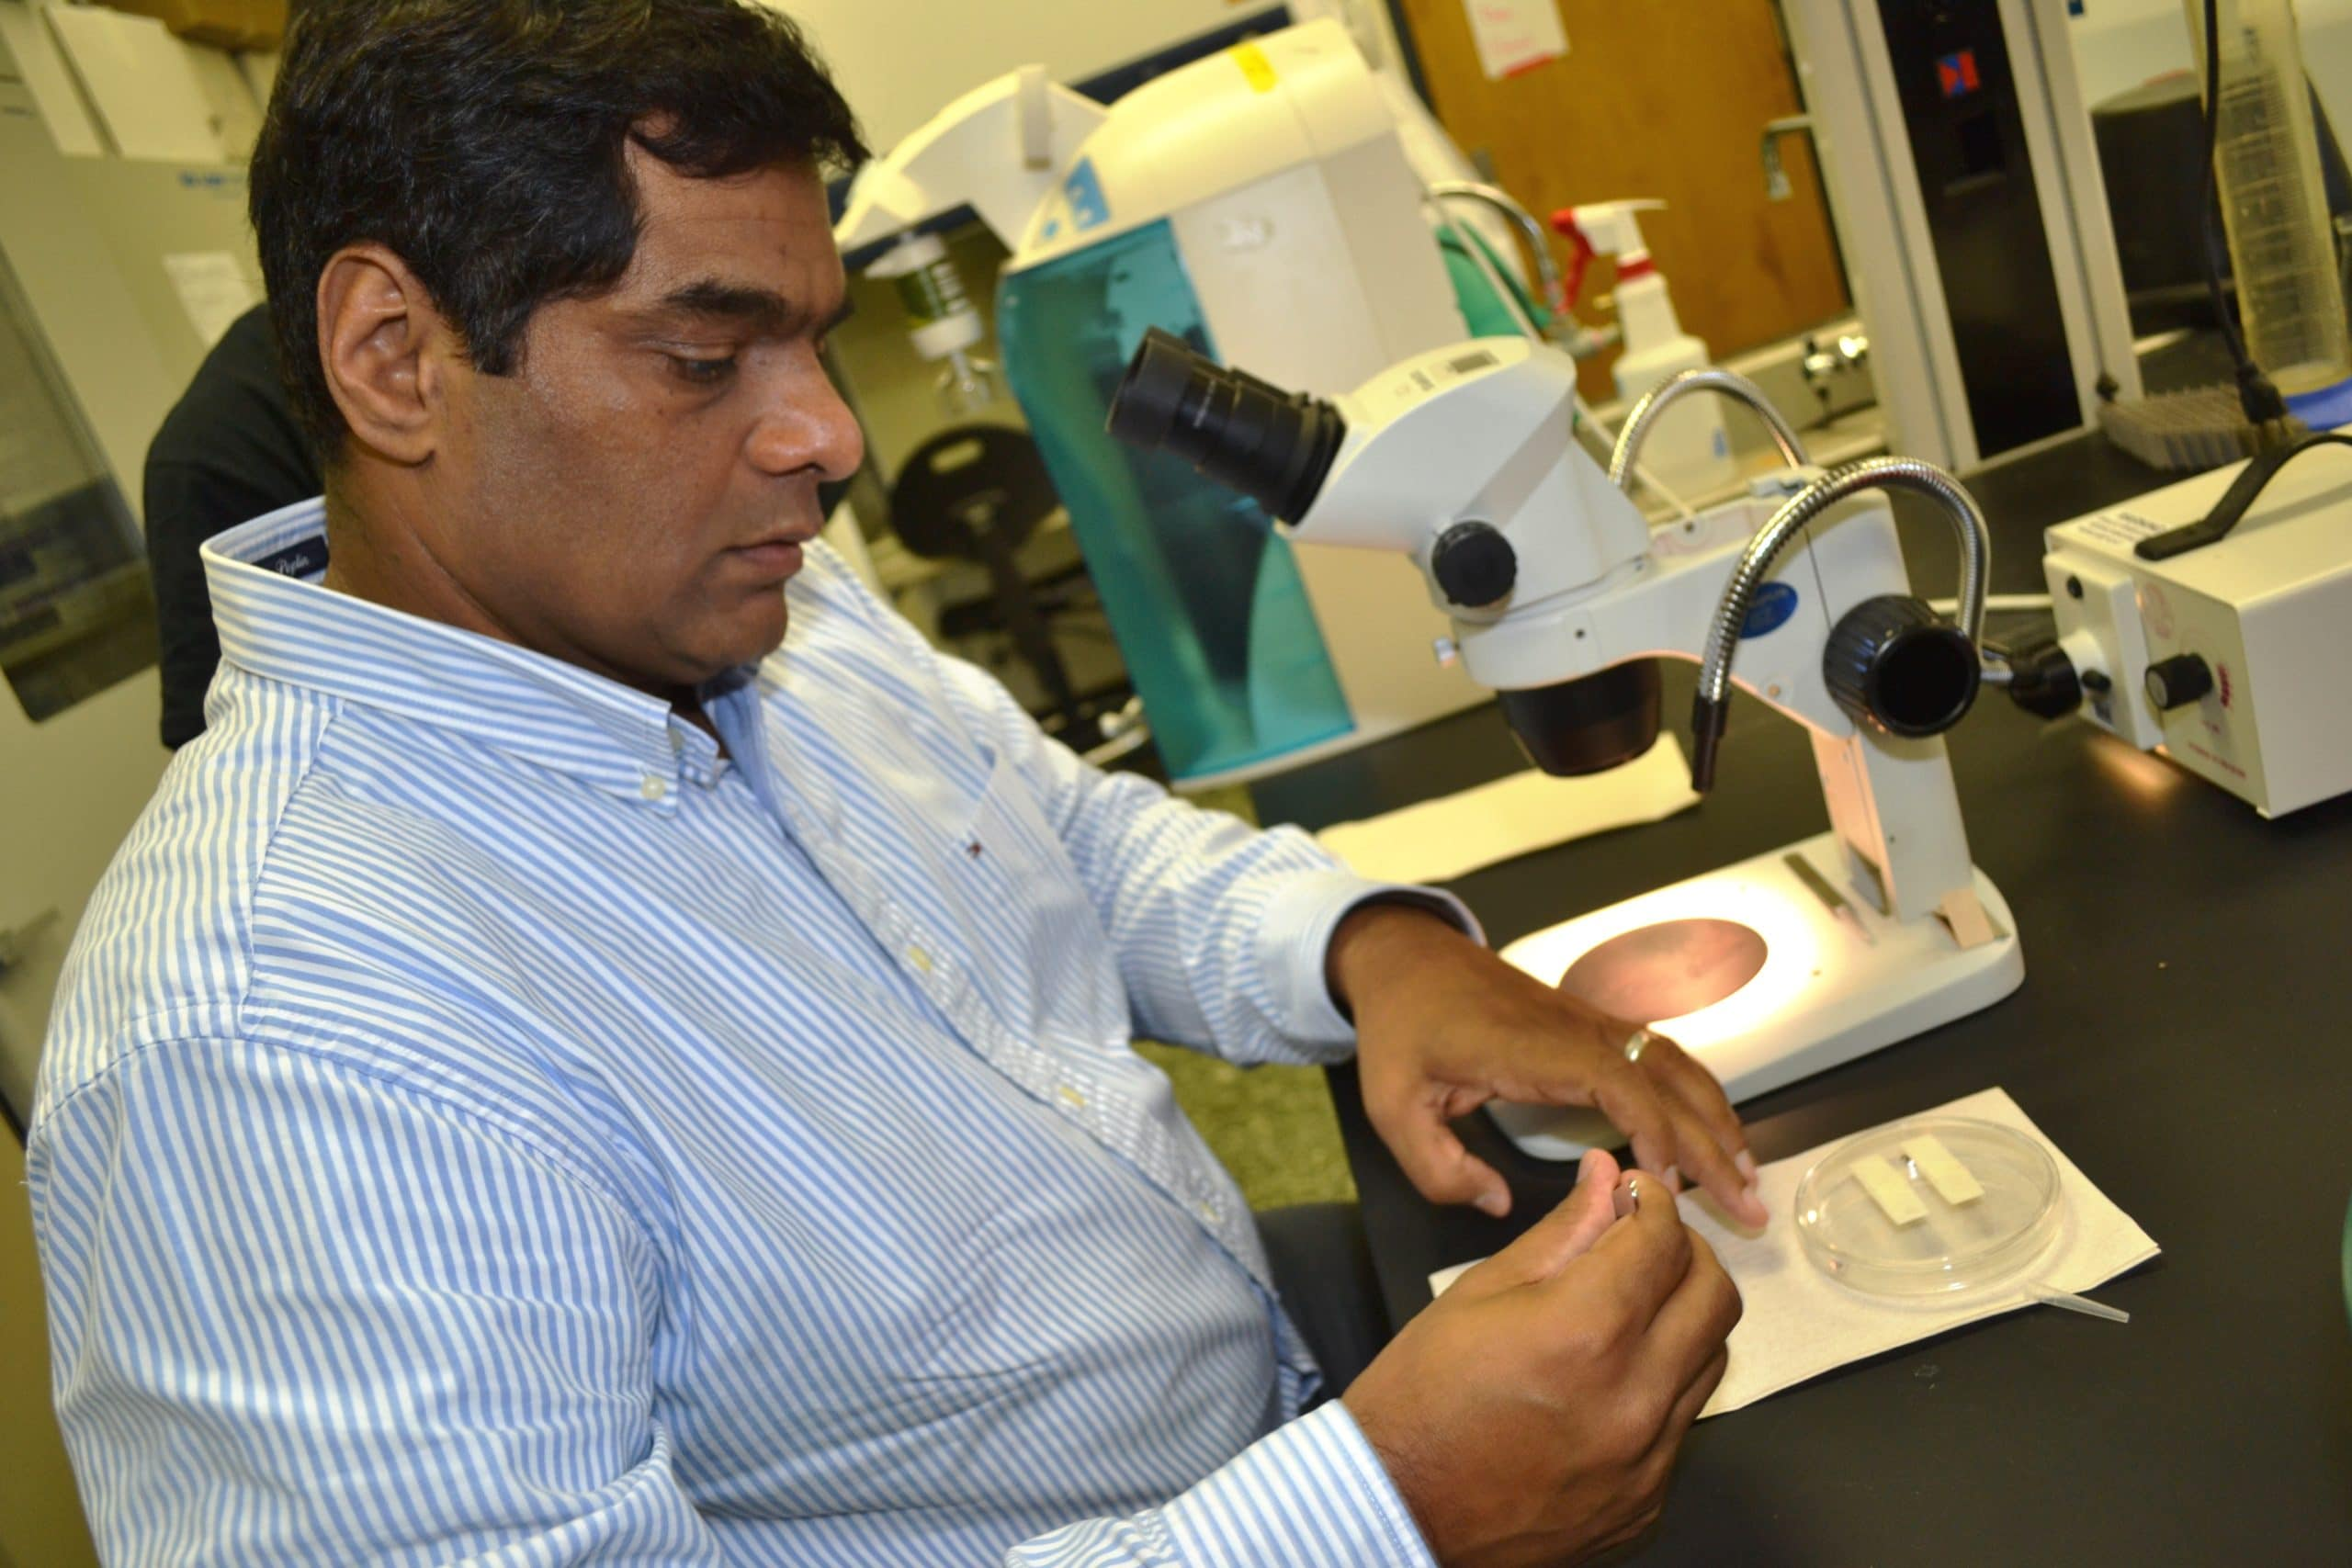 USM's Dr. Shahid Karim Receives Grant for Research on Infectious Disease